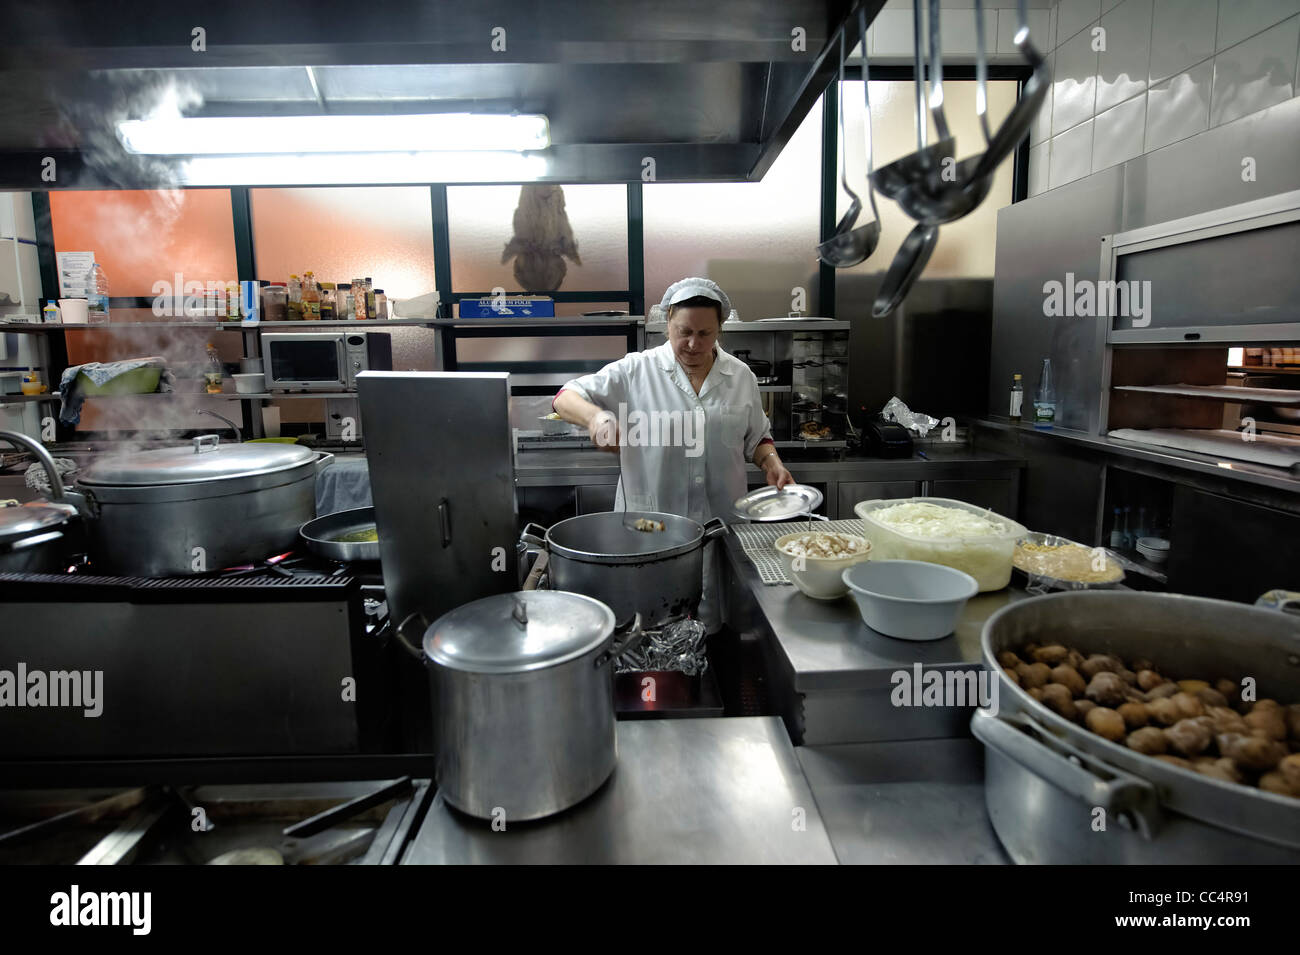 Exterior: Chef Preparing Food In A Restaurant's Modern Professional